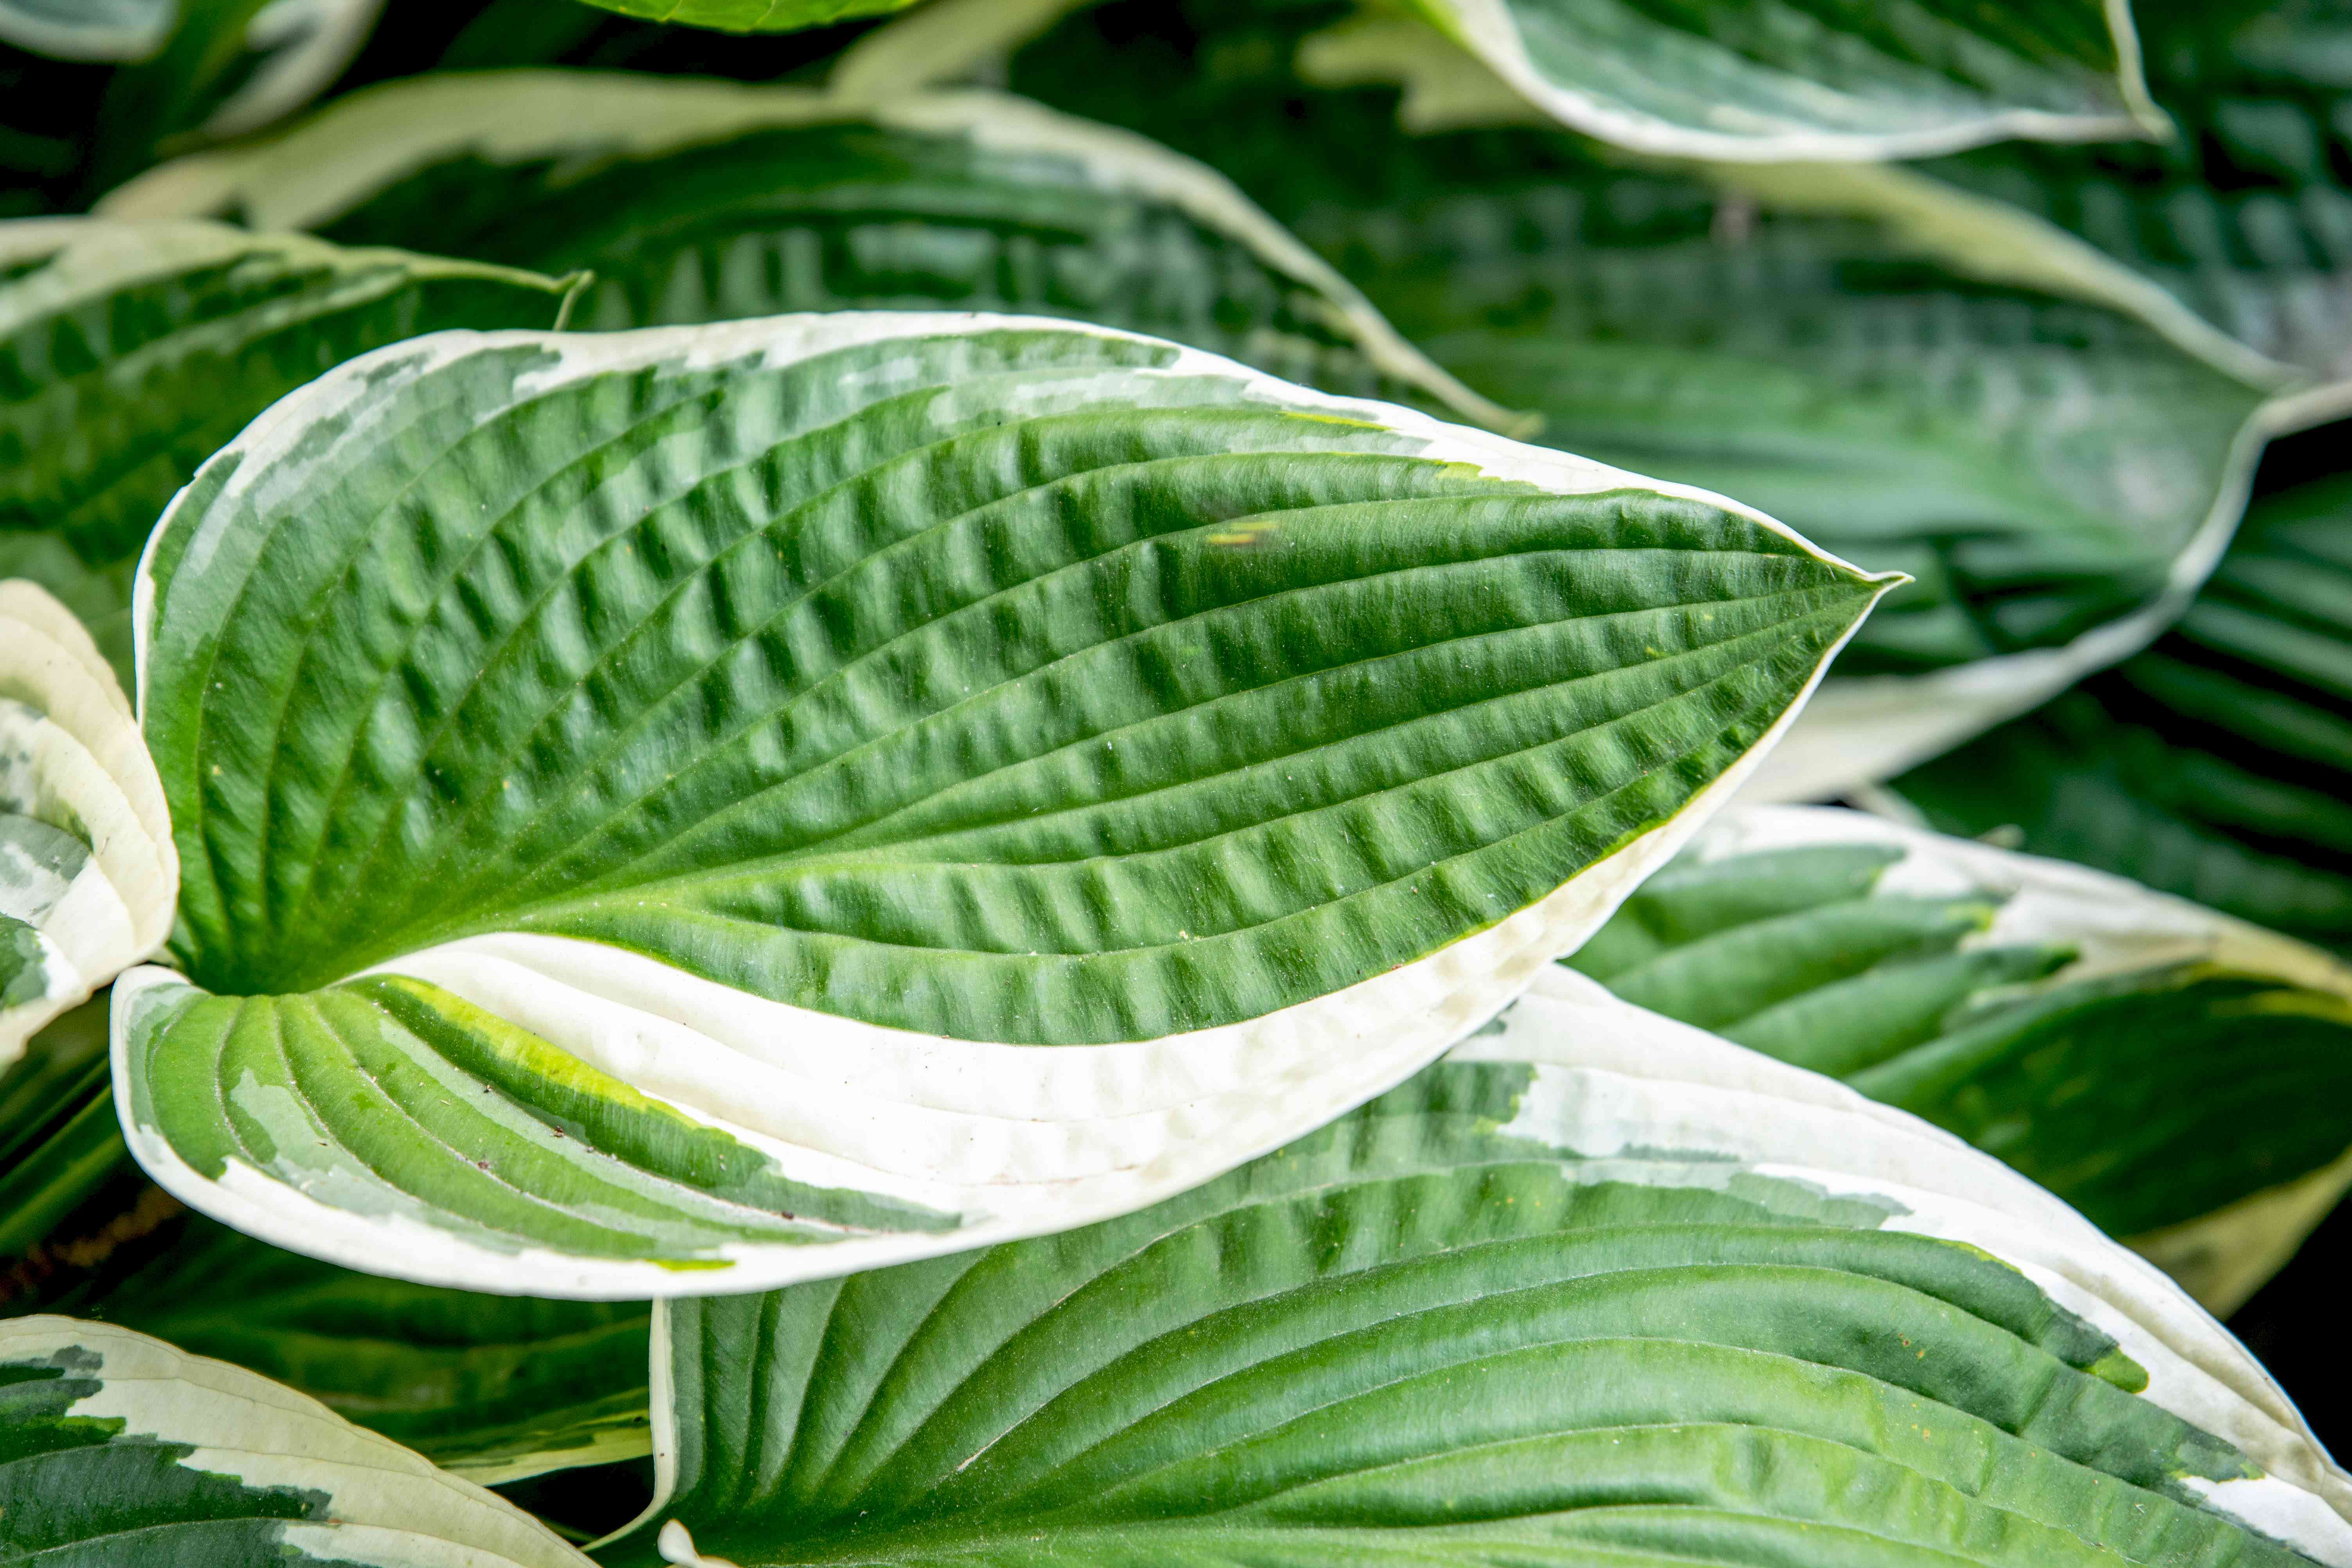 Francee hosta plant with large white and green variegated leaf closeup